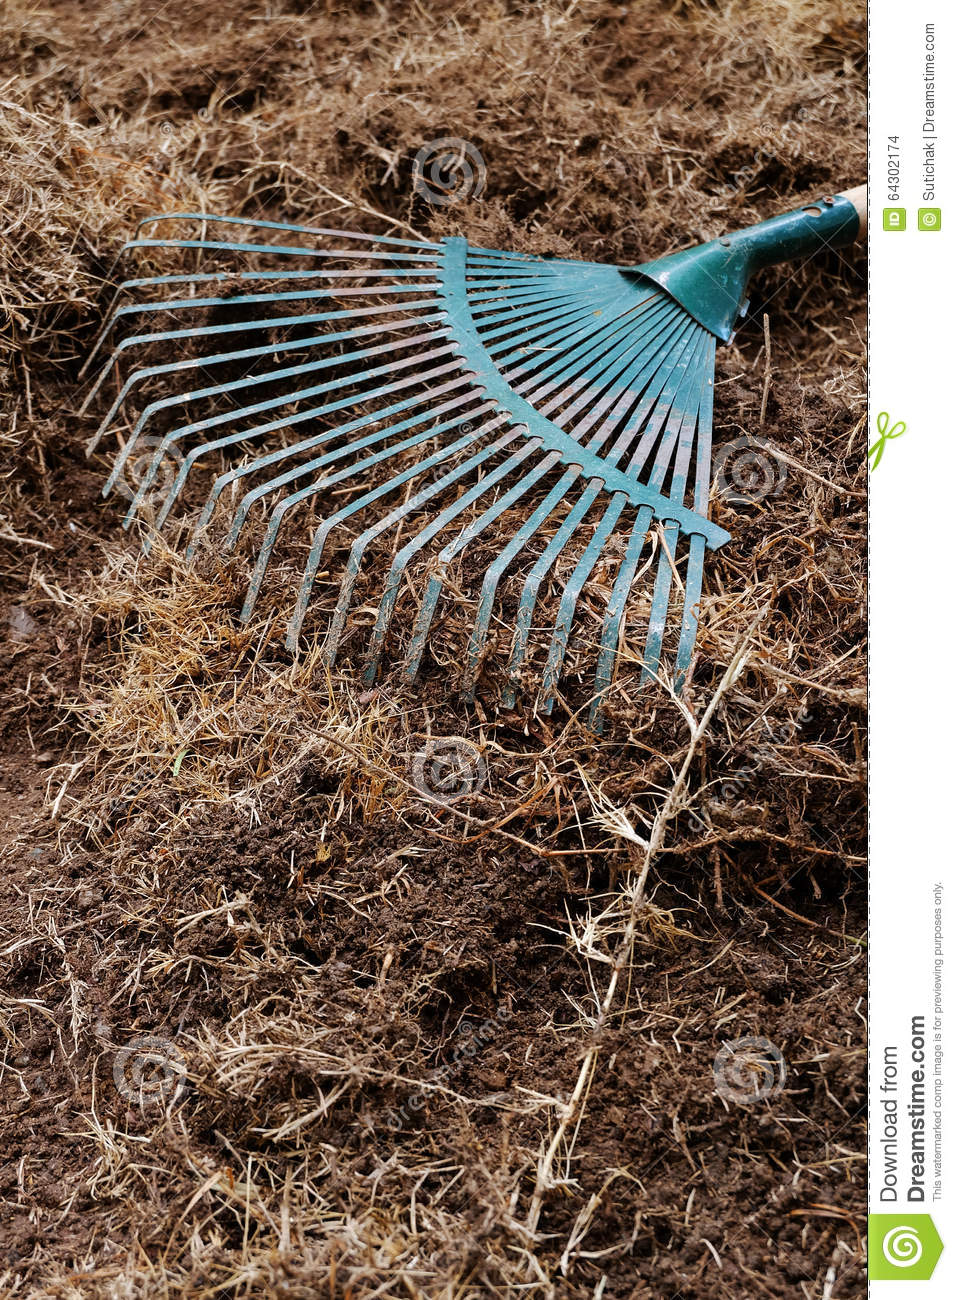 Yard work preparation soil in garden with rake stock photo image 64302174 - Gardening works in october winter preparations ...